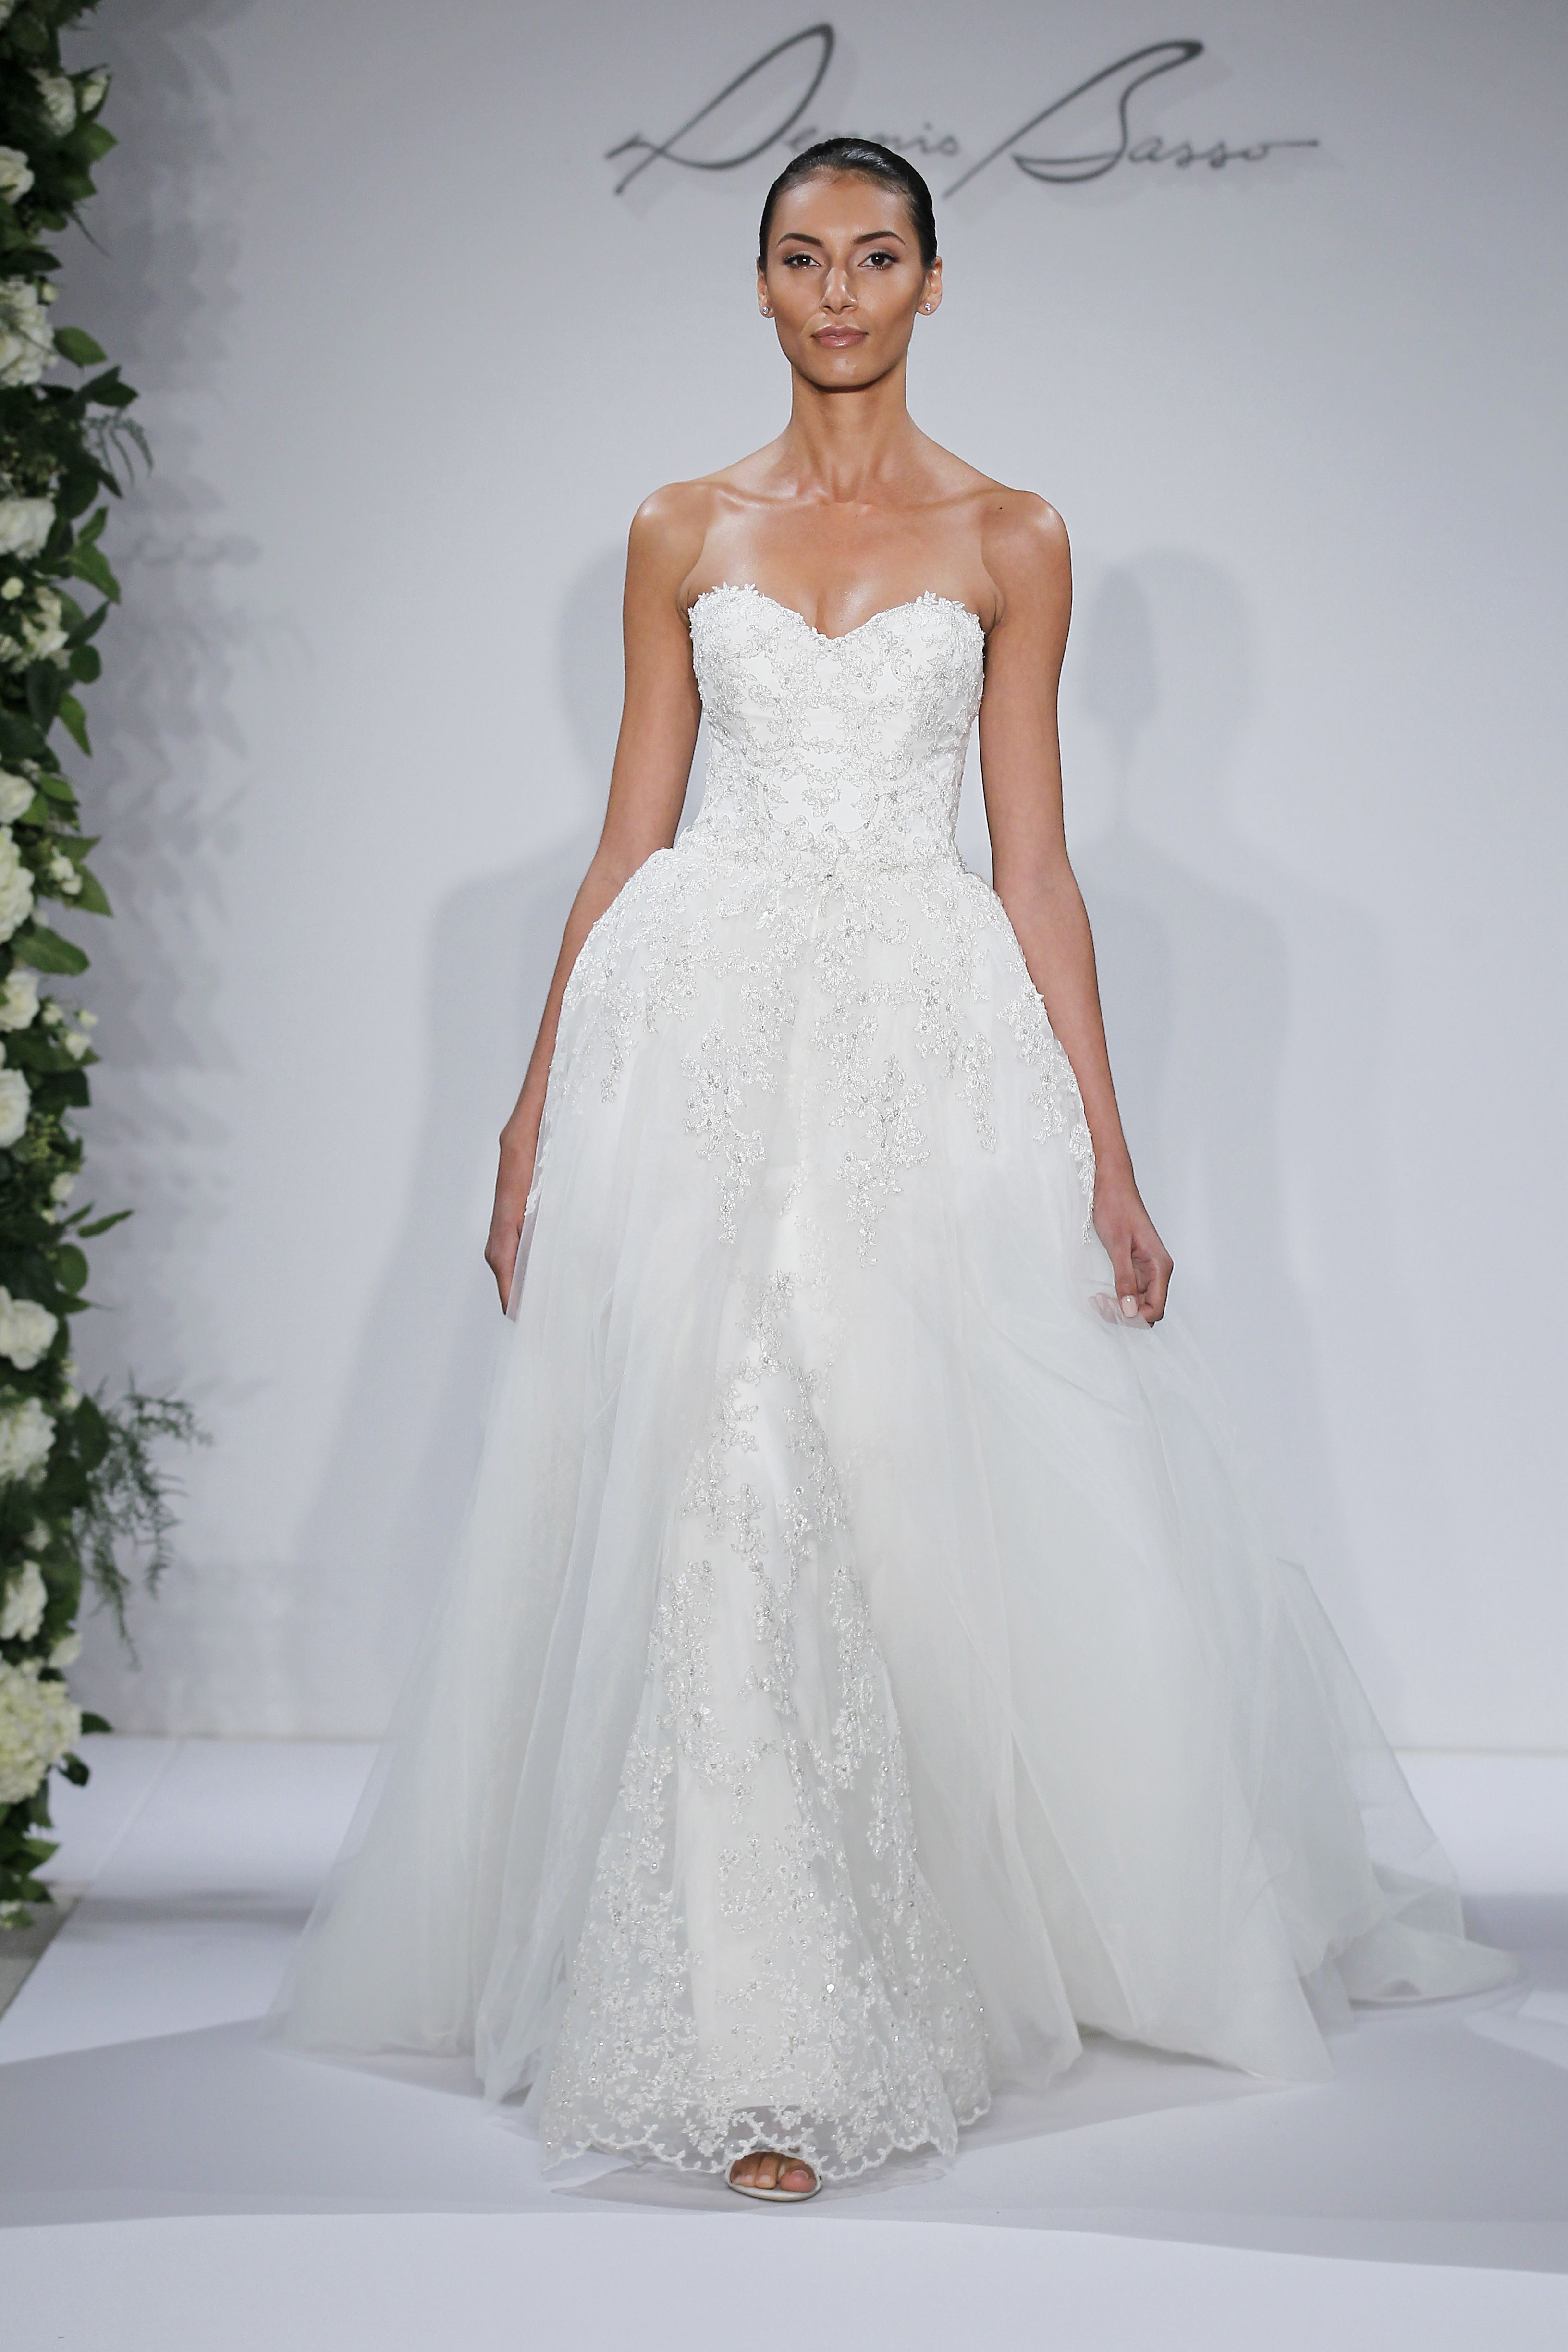 Style 14044 - Ivory strapless beaded and embroidered tulle sheath gown with removable tulle lined poof skirt, lace scallop edge detail at hem